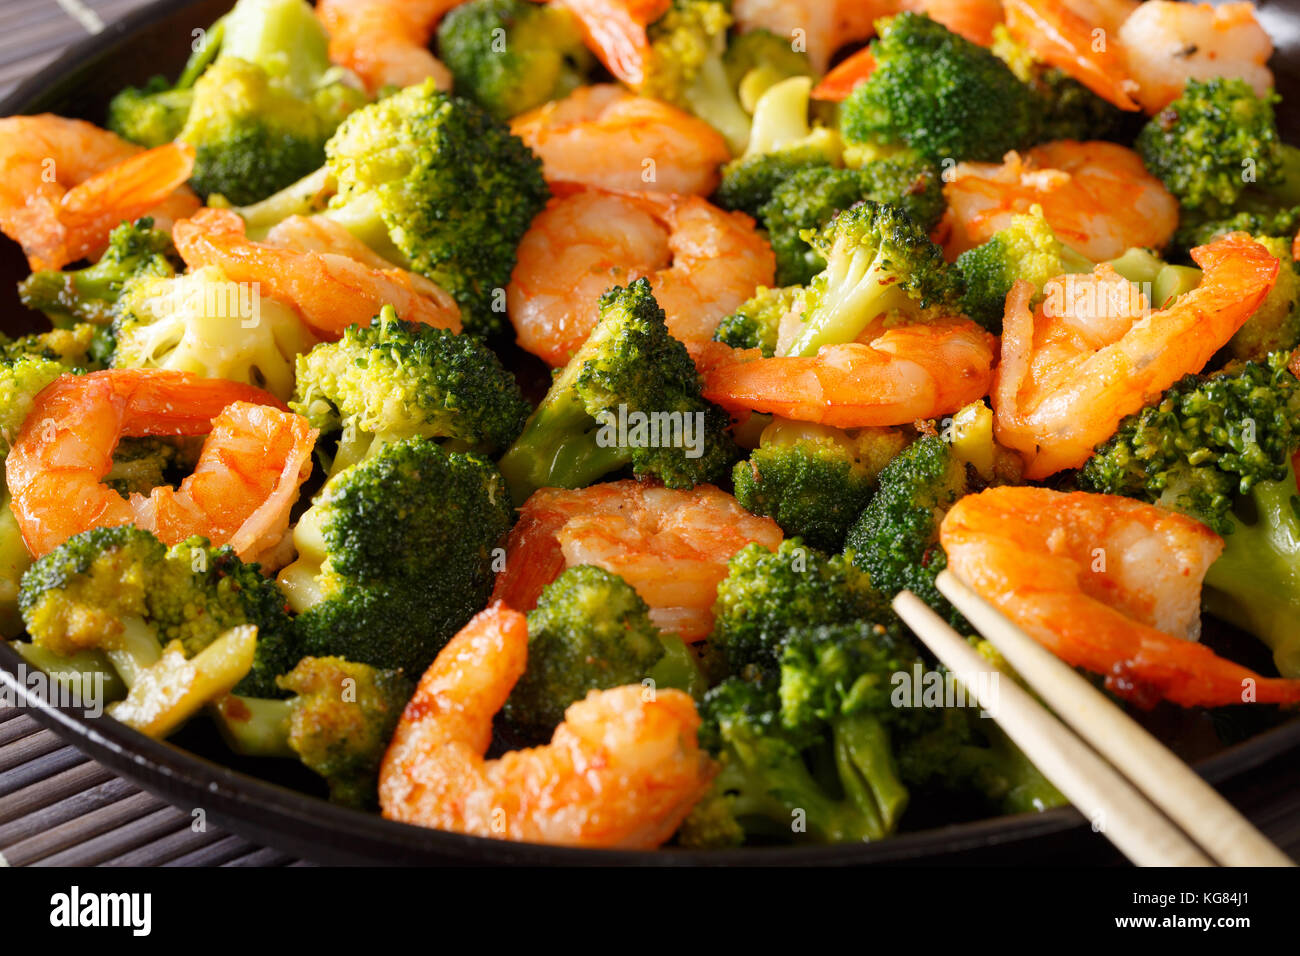 Chinese-Style Stir-fry With Chicken and Vegetables Chinese-Style Stir-fry With Chicken and Vegetables new images